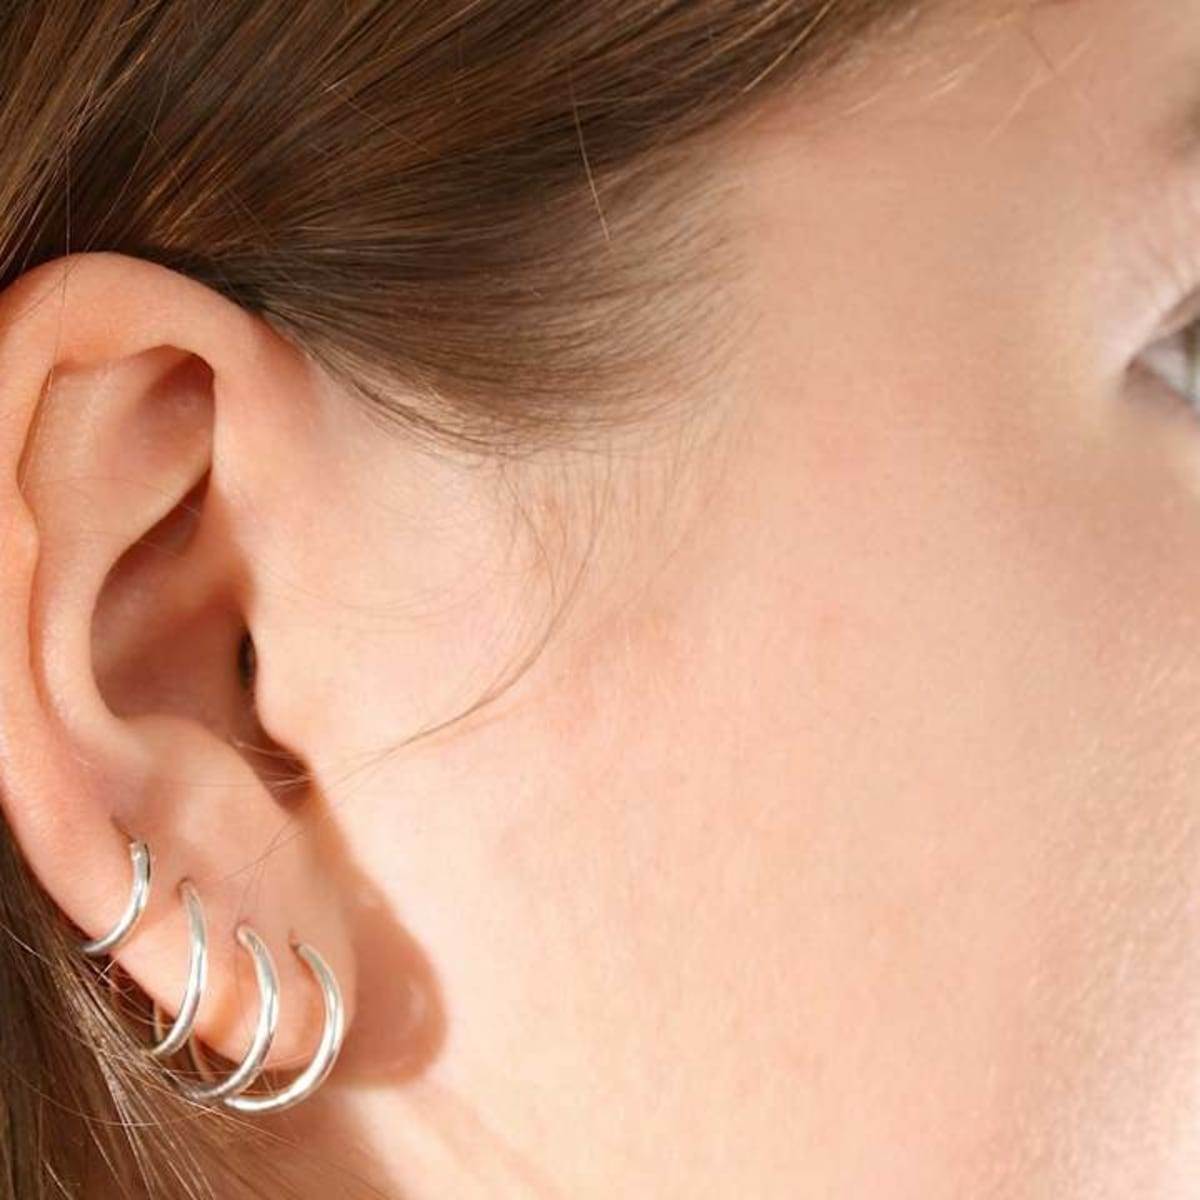 What Are The Dangers Of Self Piercing Howcast